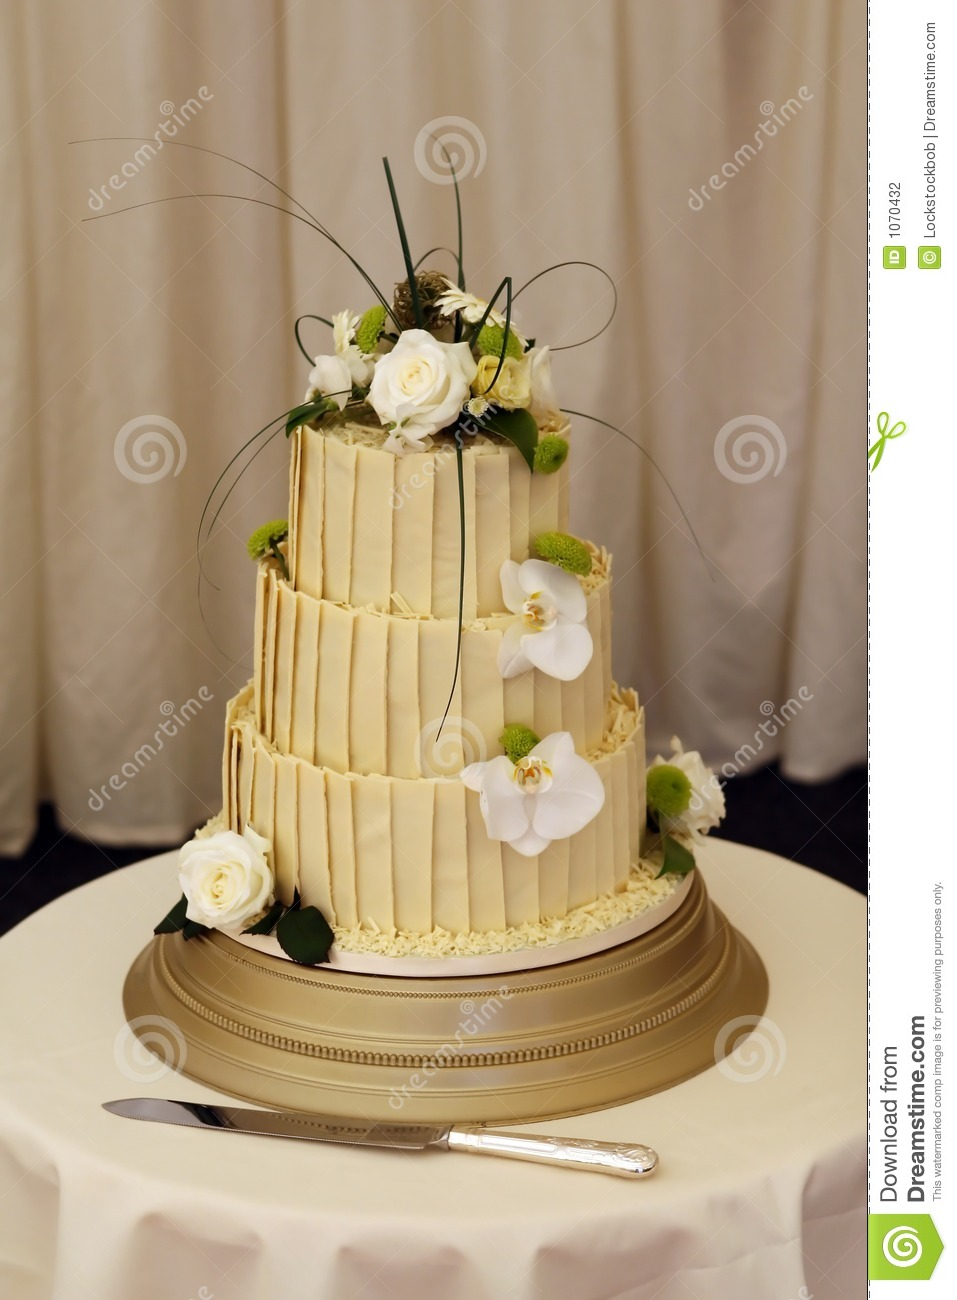 Bride And Grooms Wedding Cake Stock Photo - Image of knife, formal ...